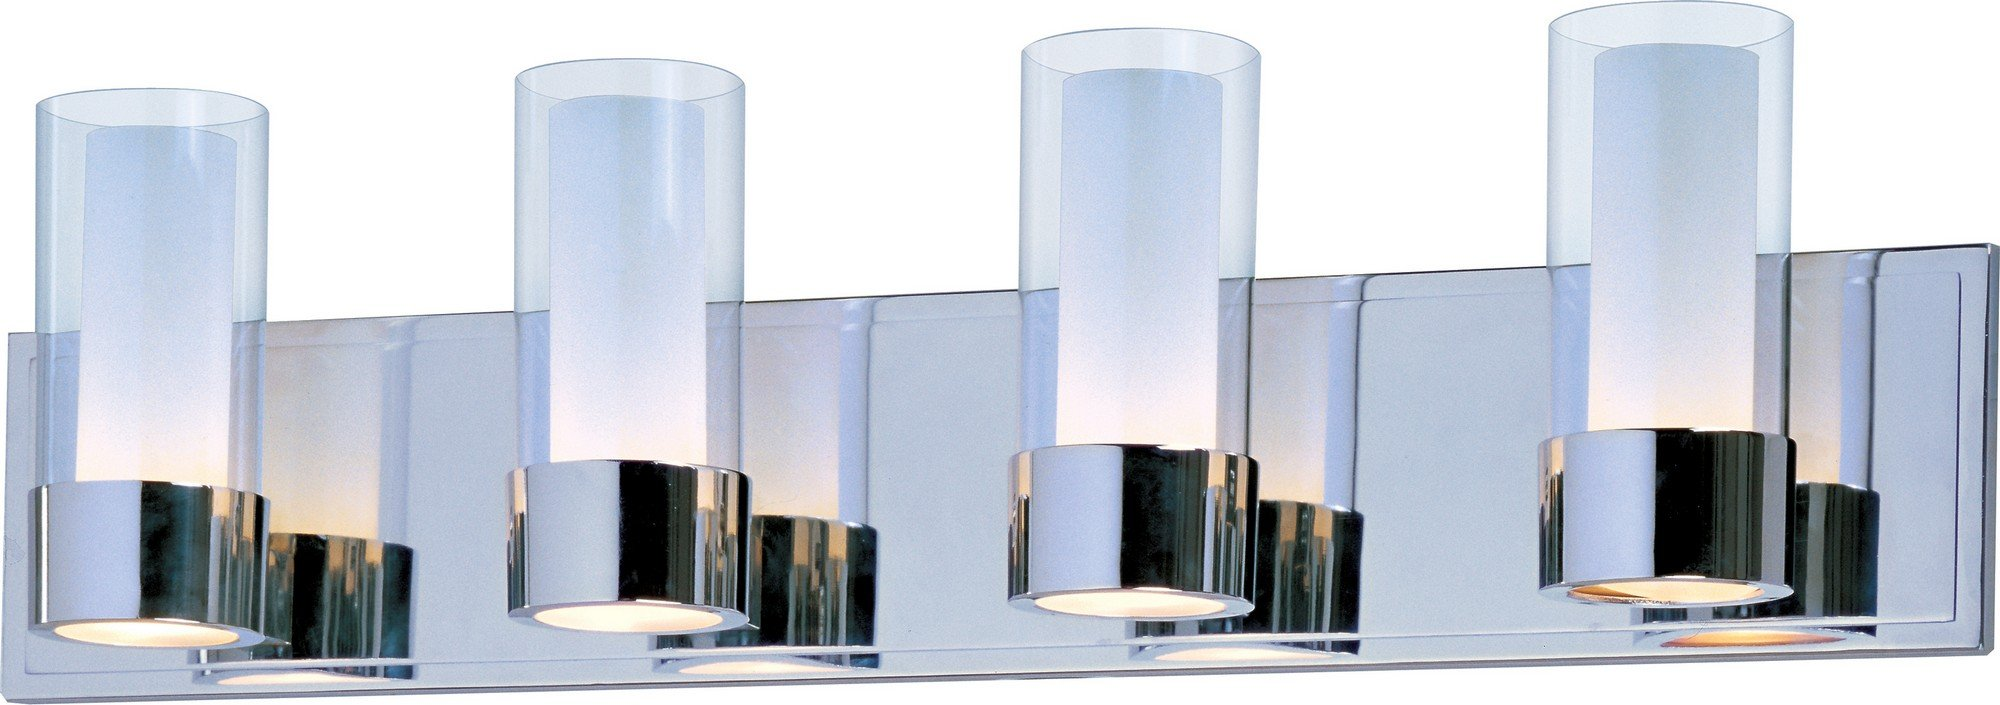 Maxim 23074CLFTPC Silo 4-Light Bath Vanity, Polished Chrome Finish, Clear/Frosted Glass, G9 Frost Xenon Xenon Bulb , 100W Max., Wet Safety Rating, 2700K Color Temp, Standard Dimmable, Glass Shade Material, 1150 Rated Lumens